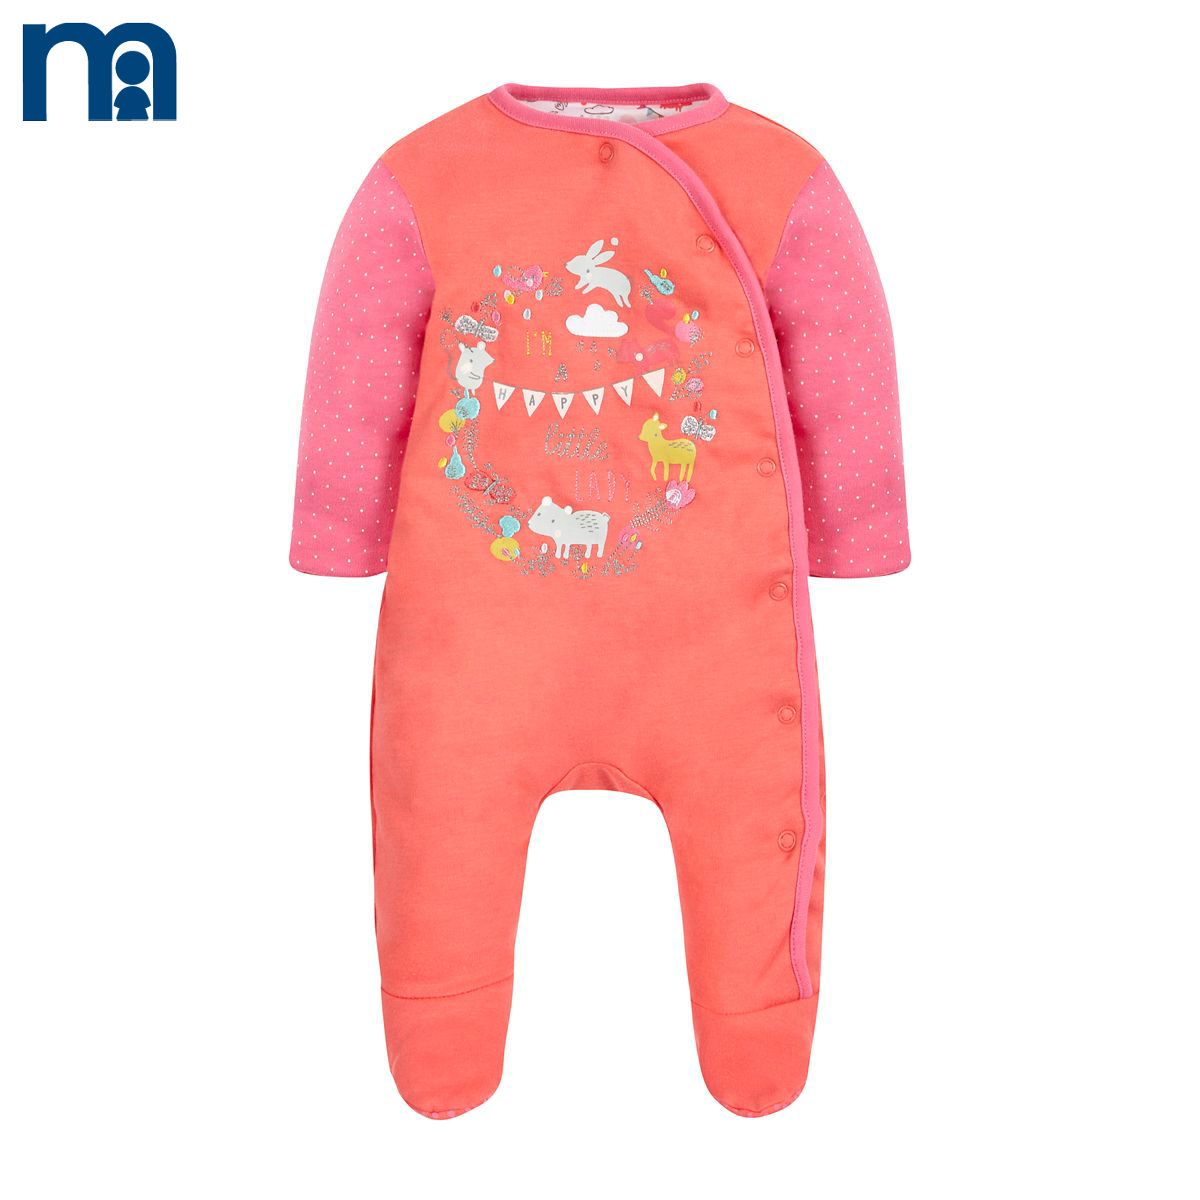 37350c9608af China Mothercare Baby Clothes